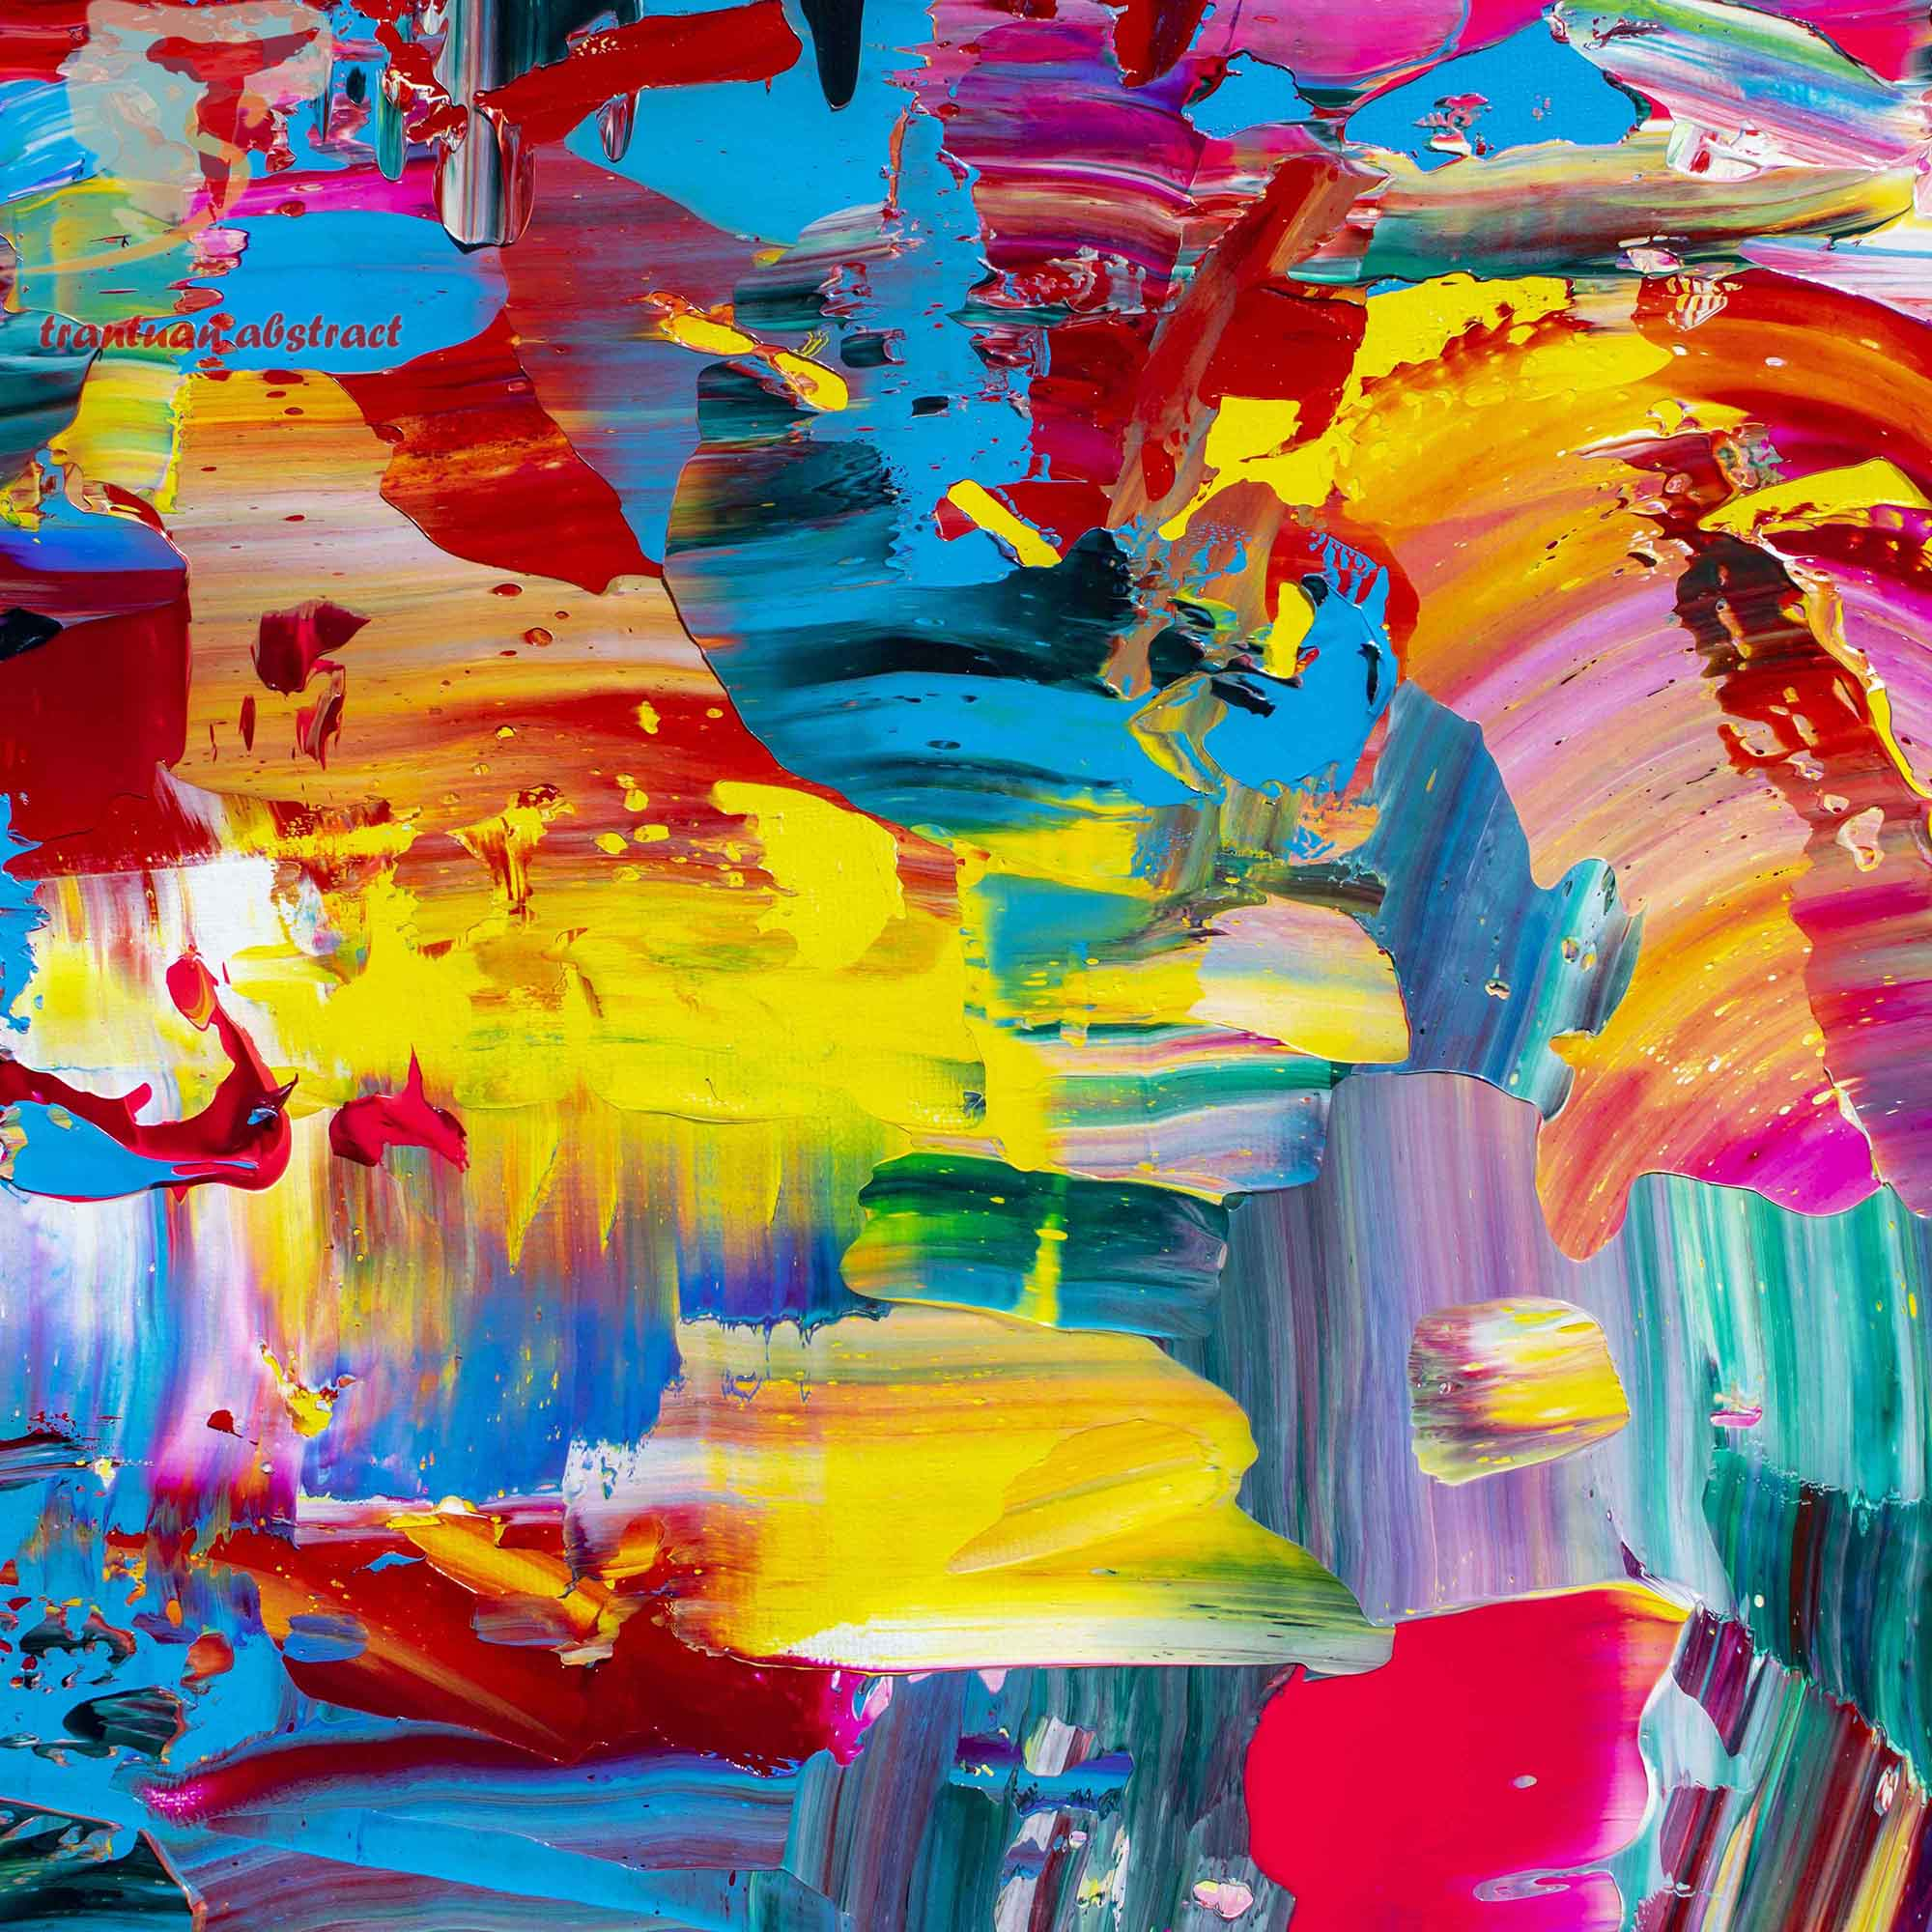 Tran Tuan Abstract Evening Garden 2021 95 x 68 x 5 cm Acrylic on Canvas Painting Detail s (1)